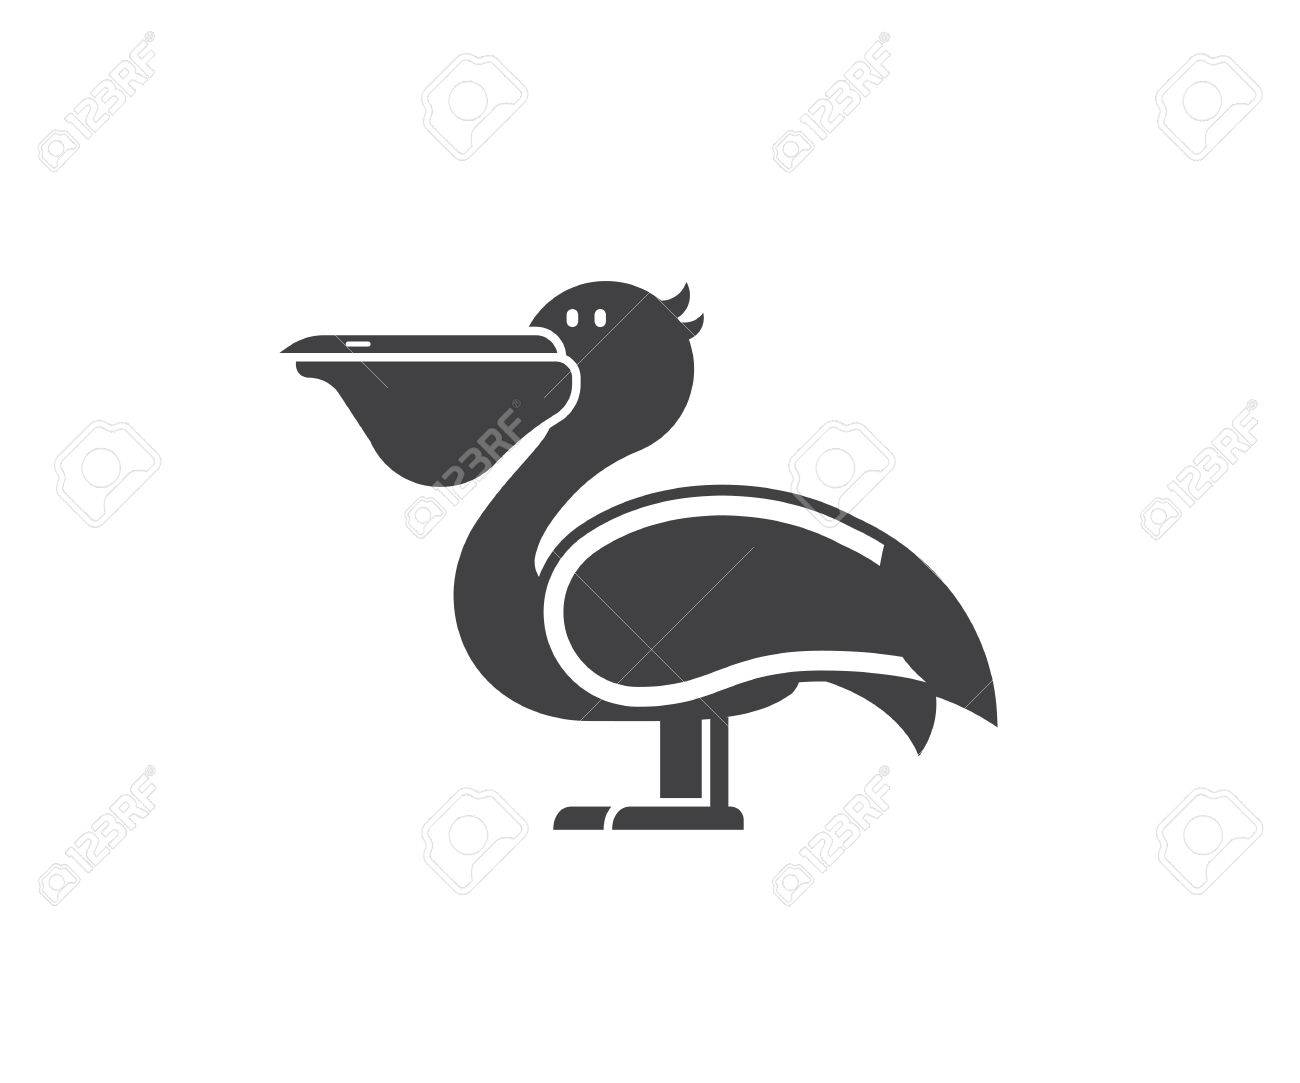 Pelican Icon In Outline Design. Large Sea Bird Logo Or Label Template In  Linear Style  Large Label Template